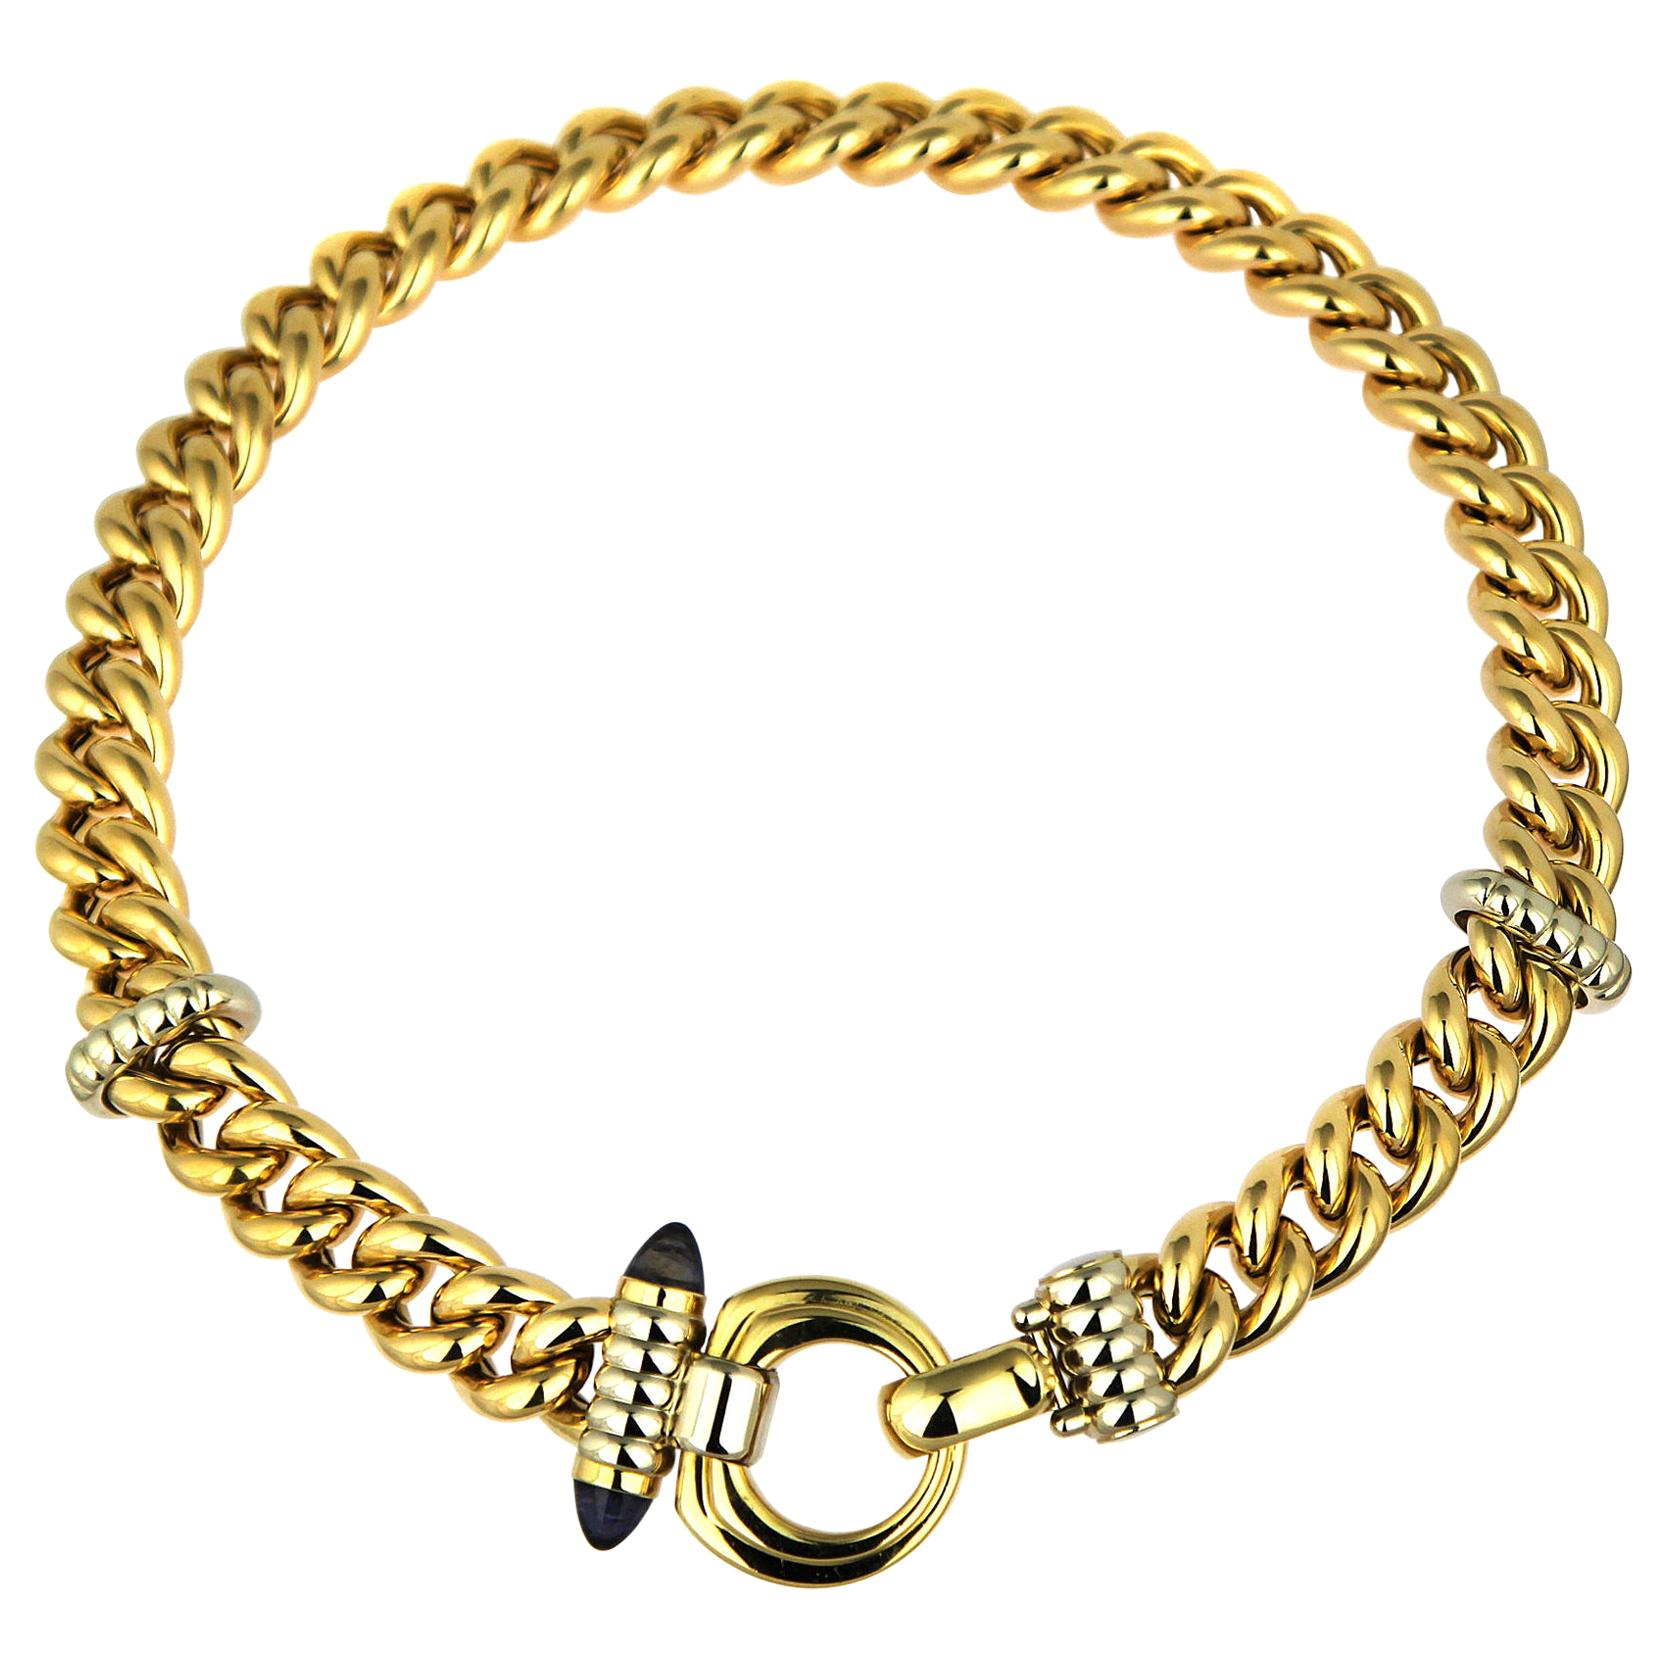 18 Karat Yellow Gold Heavy Curb Chain/Necklace with Bullet Design Amethyst Clasp